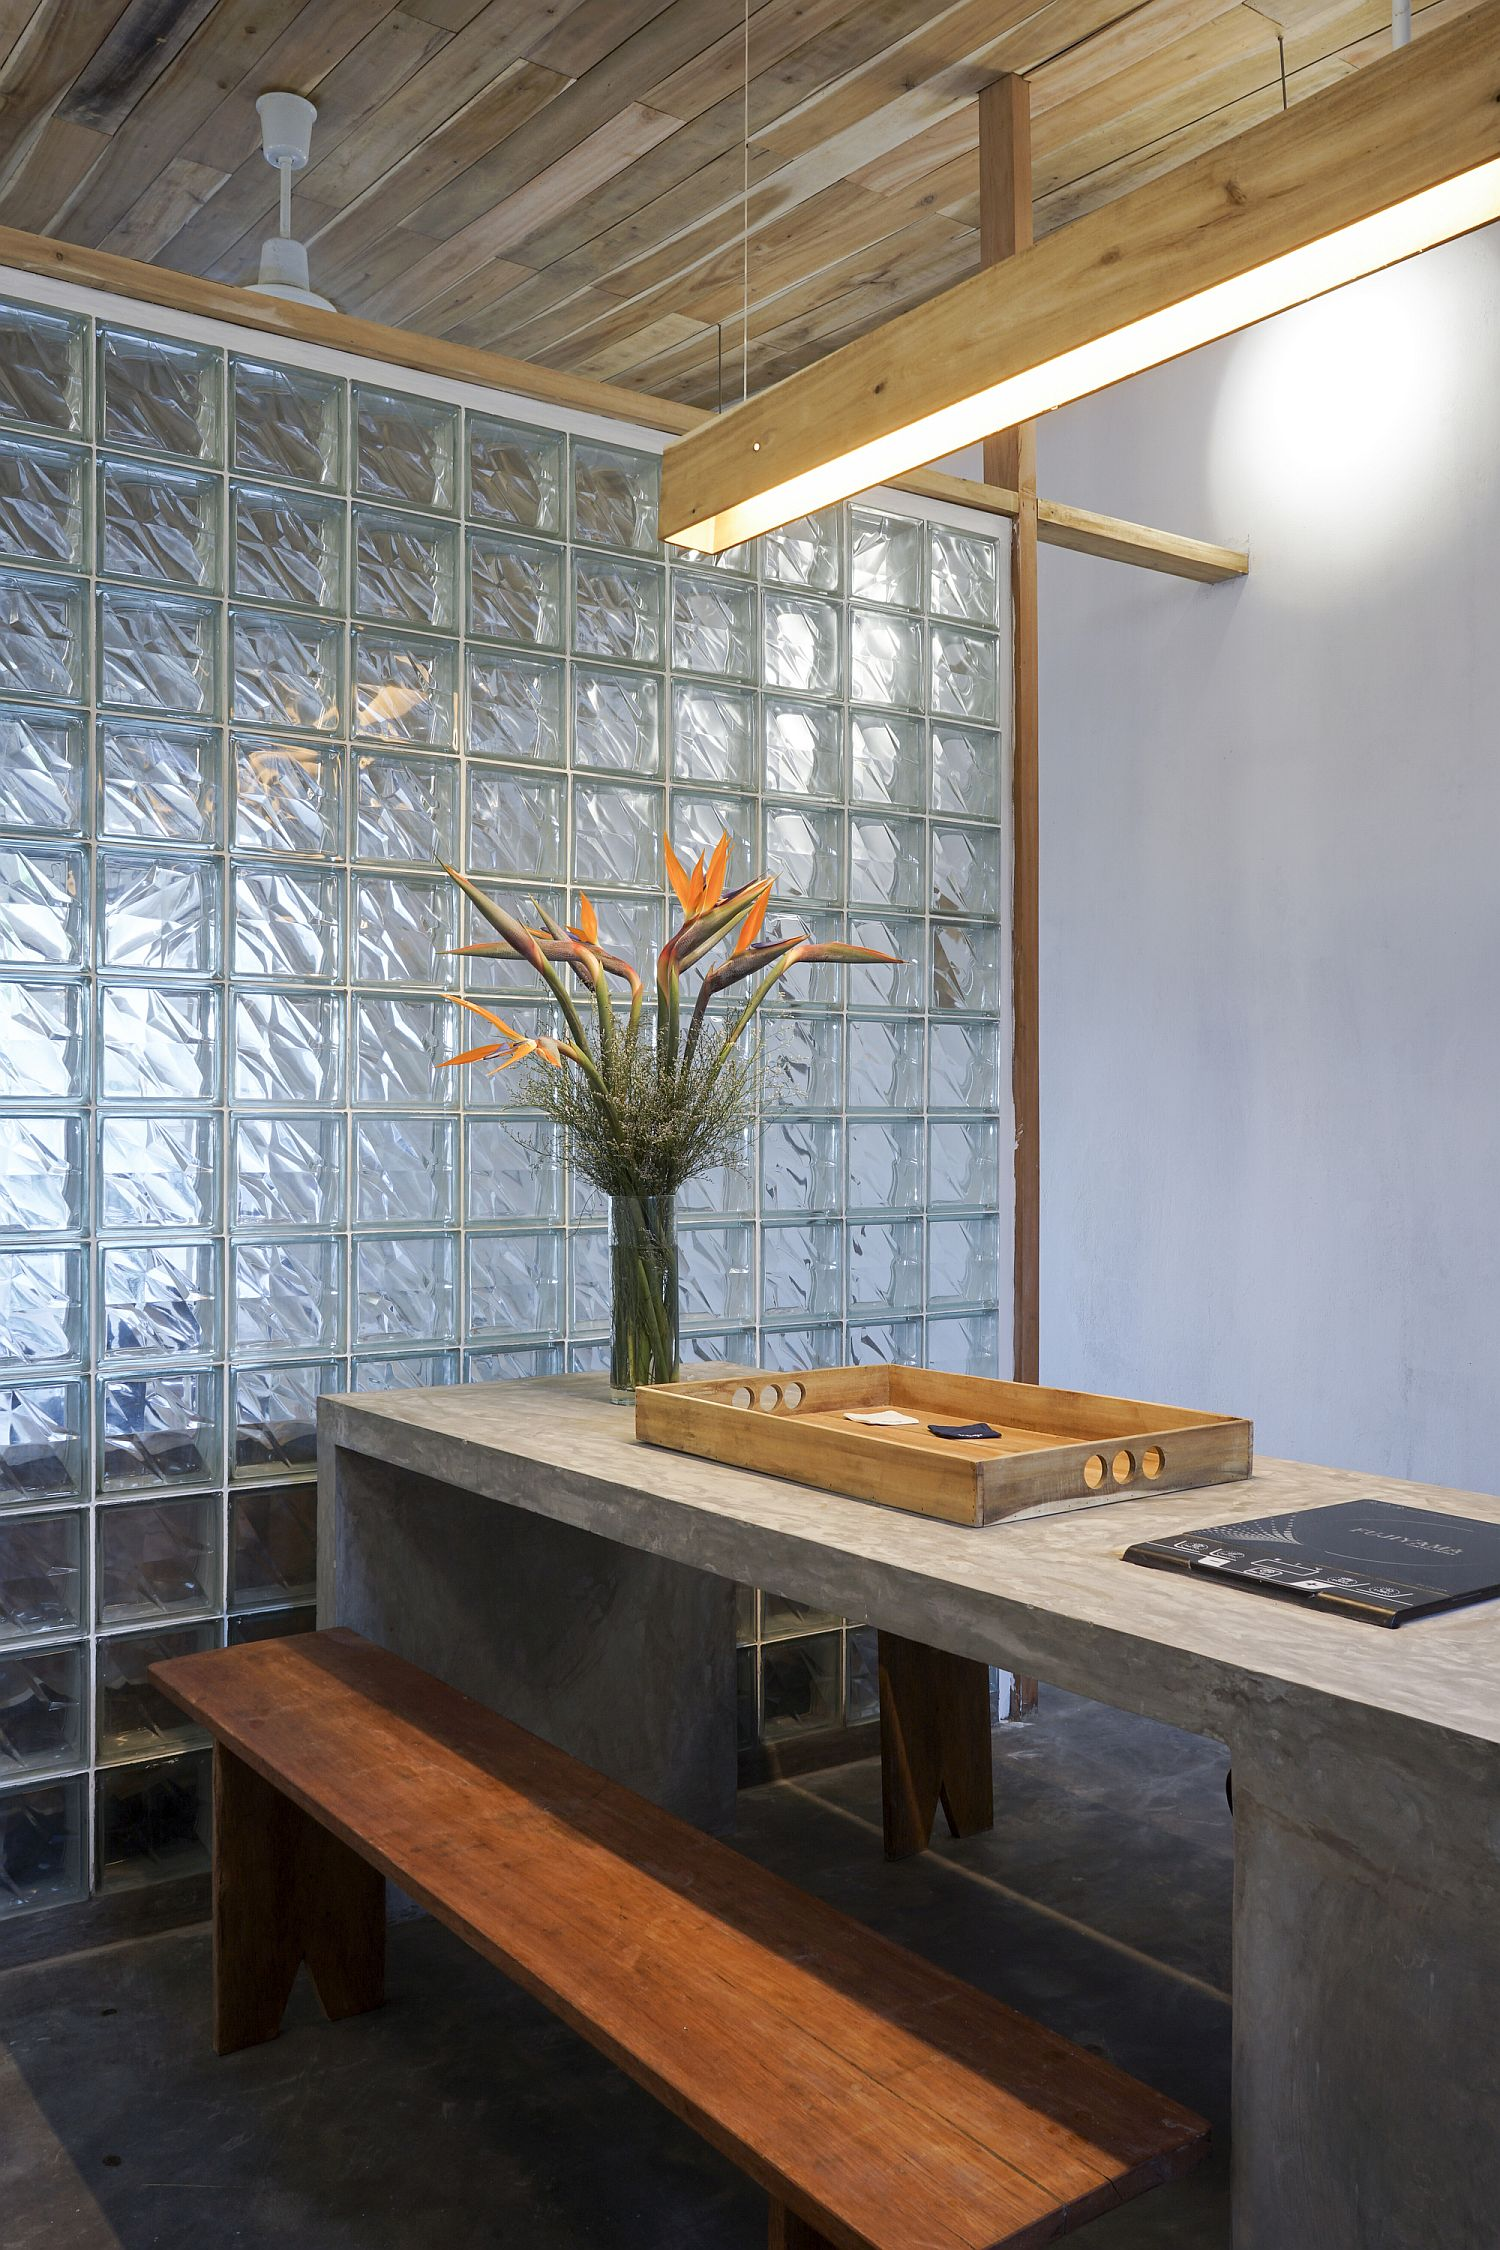 Concrete-dining-table-with-wooden-bench-keeps-things-simple-and-minimal